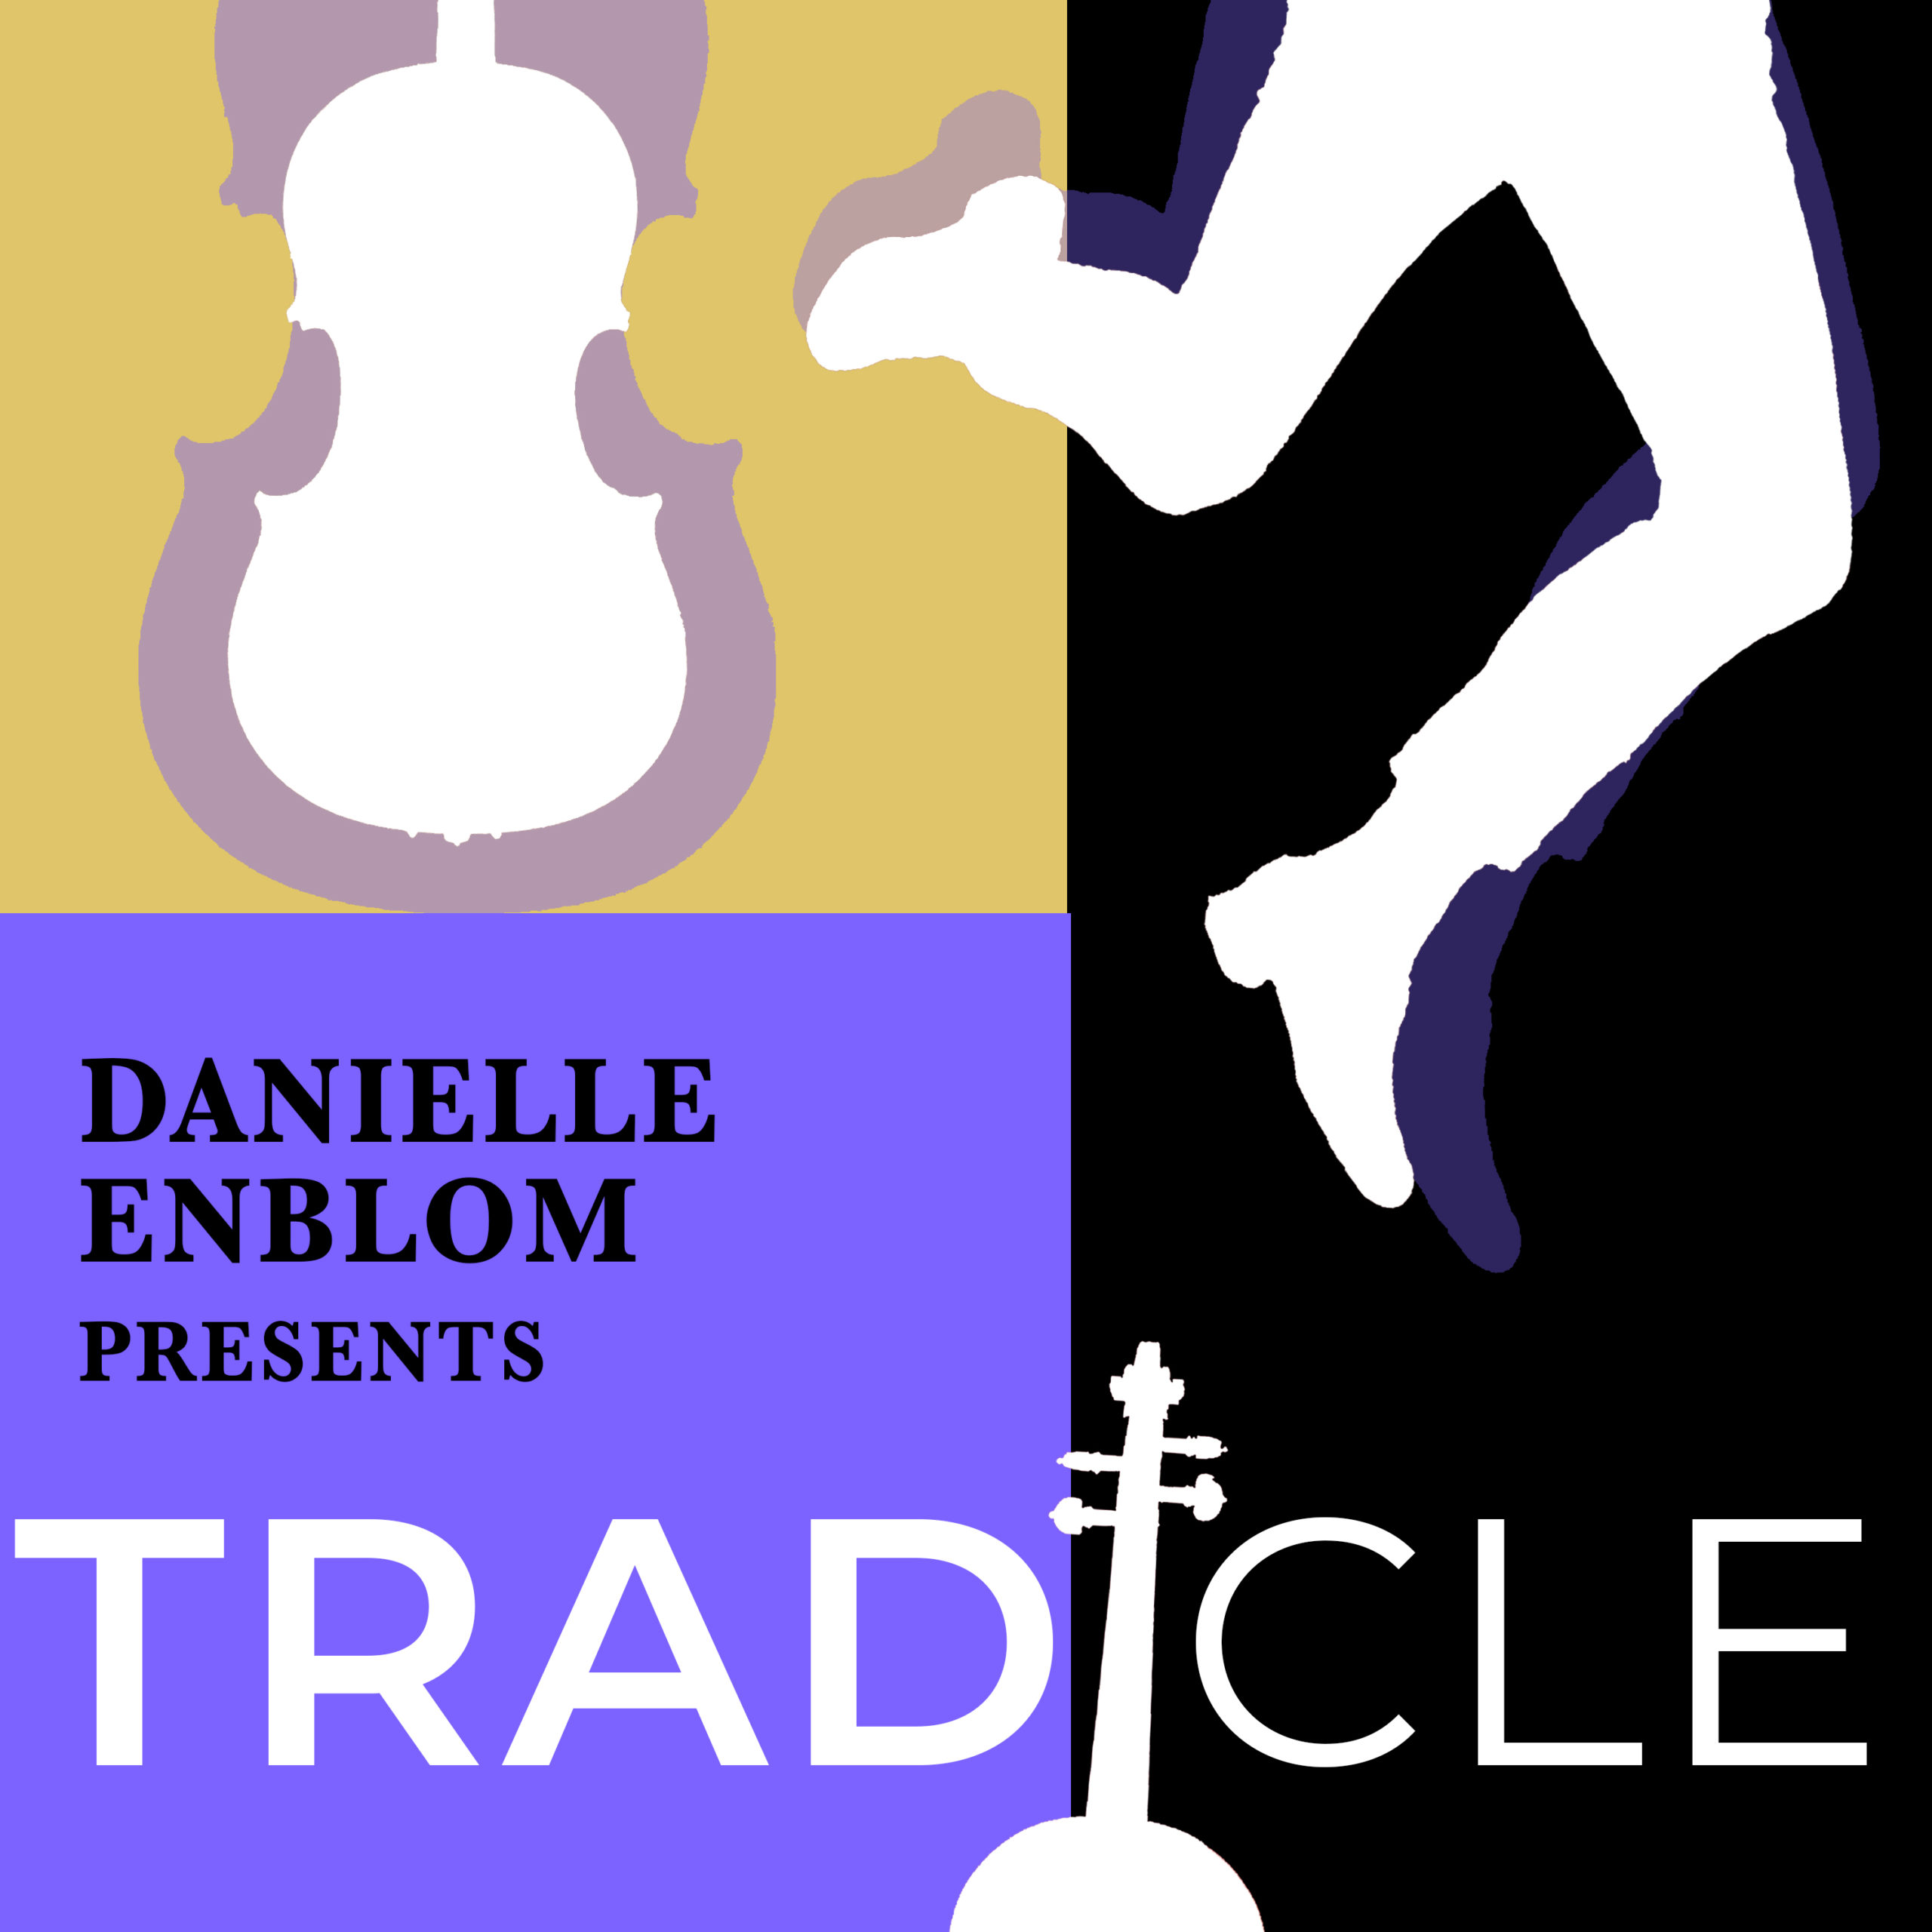 Tradicle Podcast